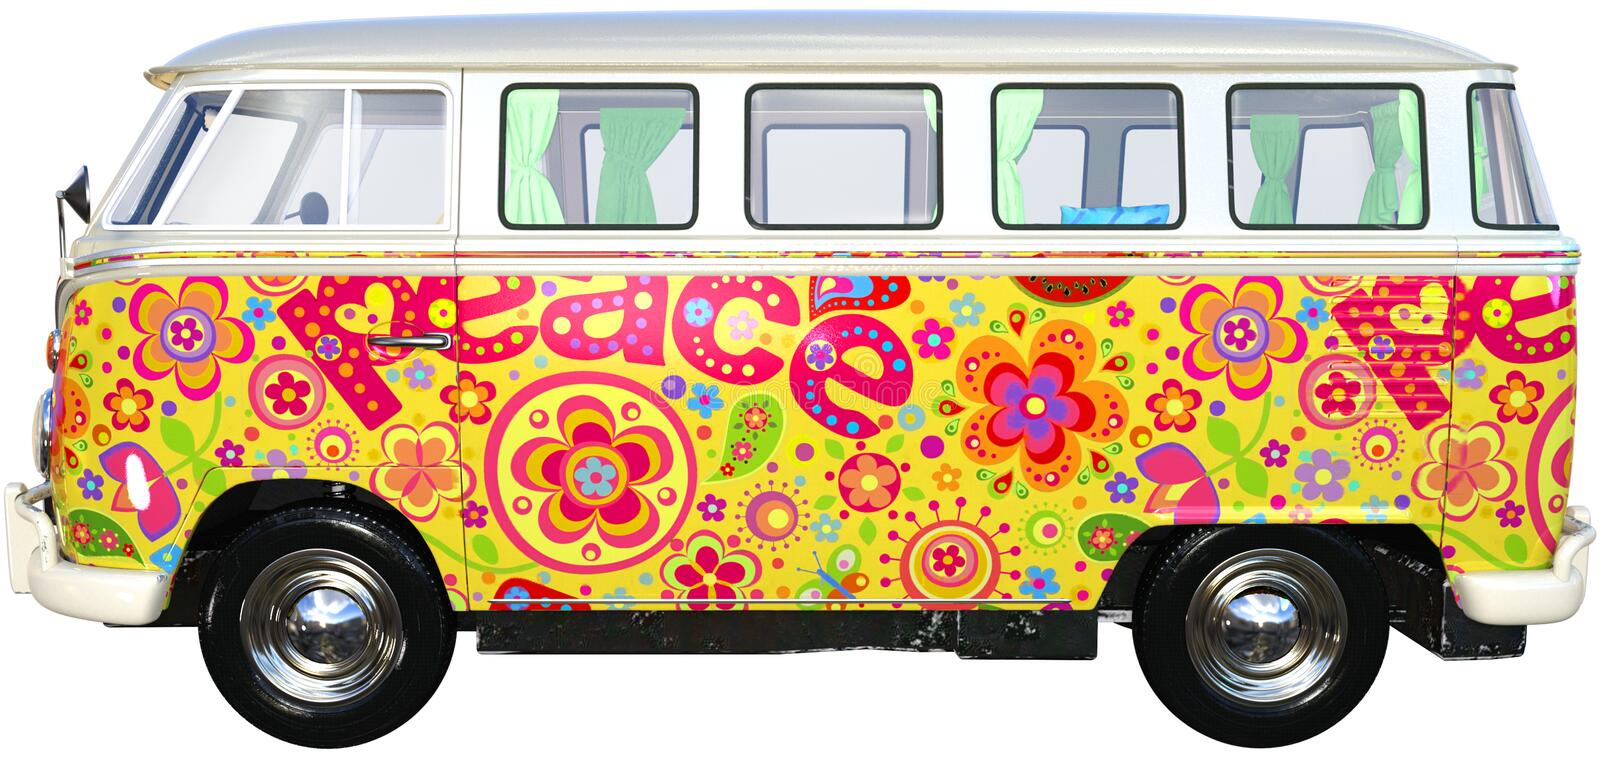 VW Hippie Bus Van Isolated, Volkswagen. Vintage retro VW Volkswagen Hippie bus van. Nostalgia throwback to the sixties when peace and love was the culture